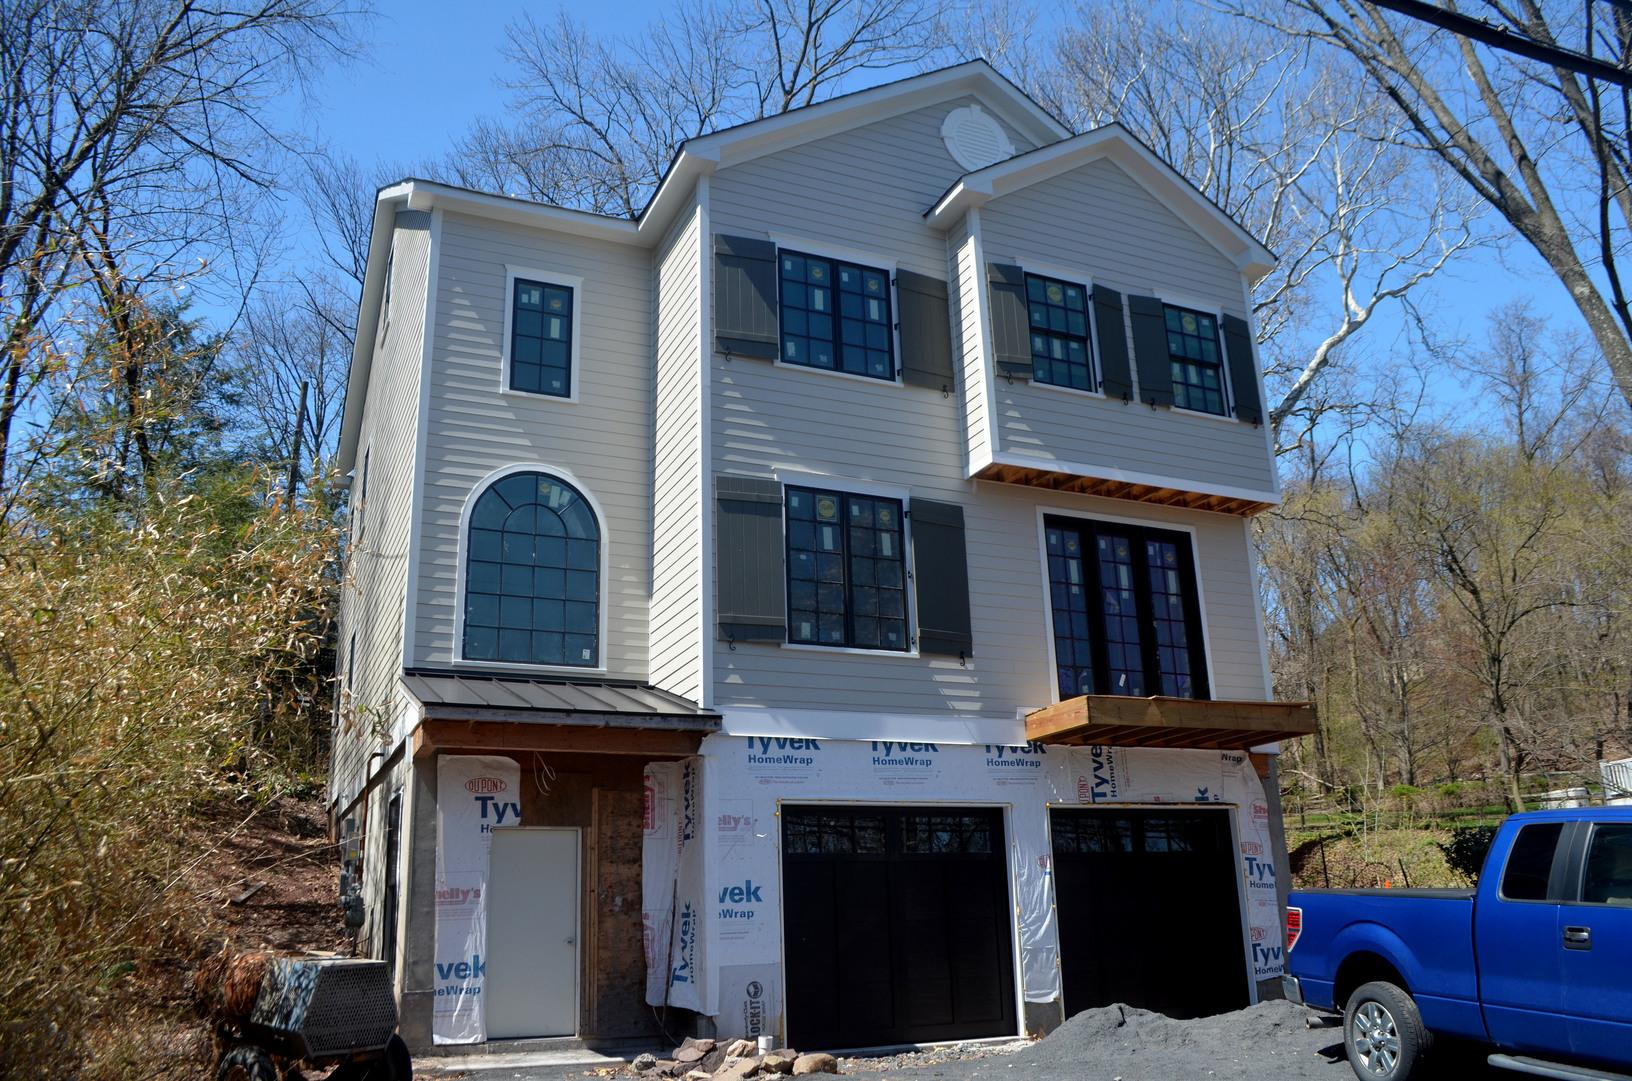 Cobble Stone James Hardie Fibercement Smooth Plank Installation on new construction in New Hope, PA